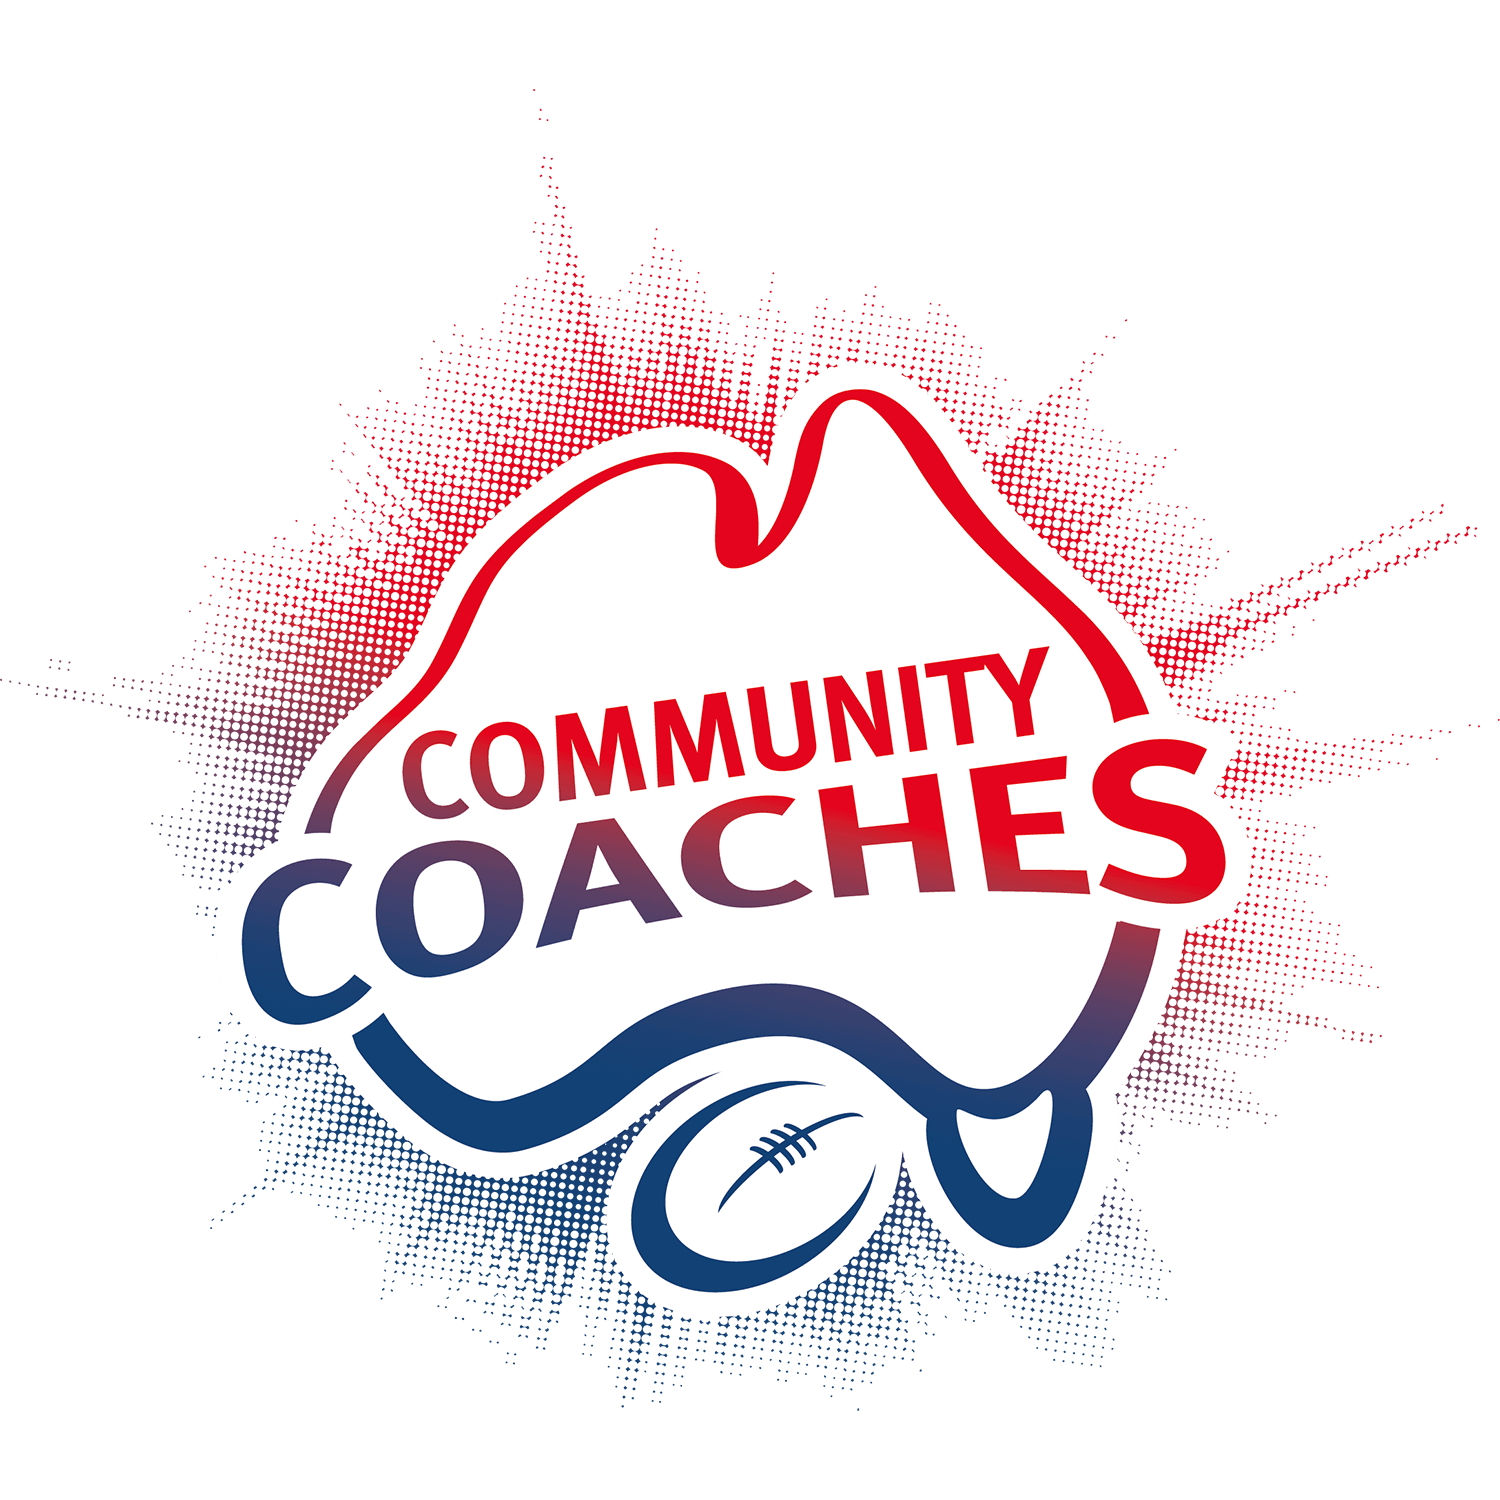 Community Coaches